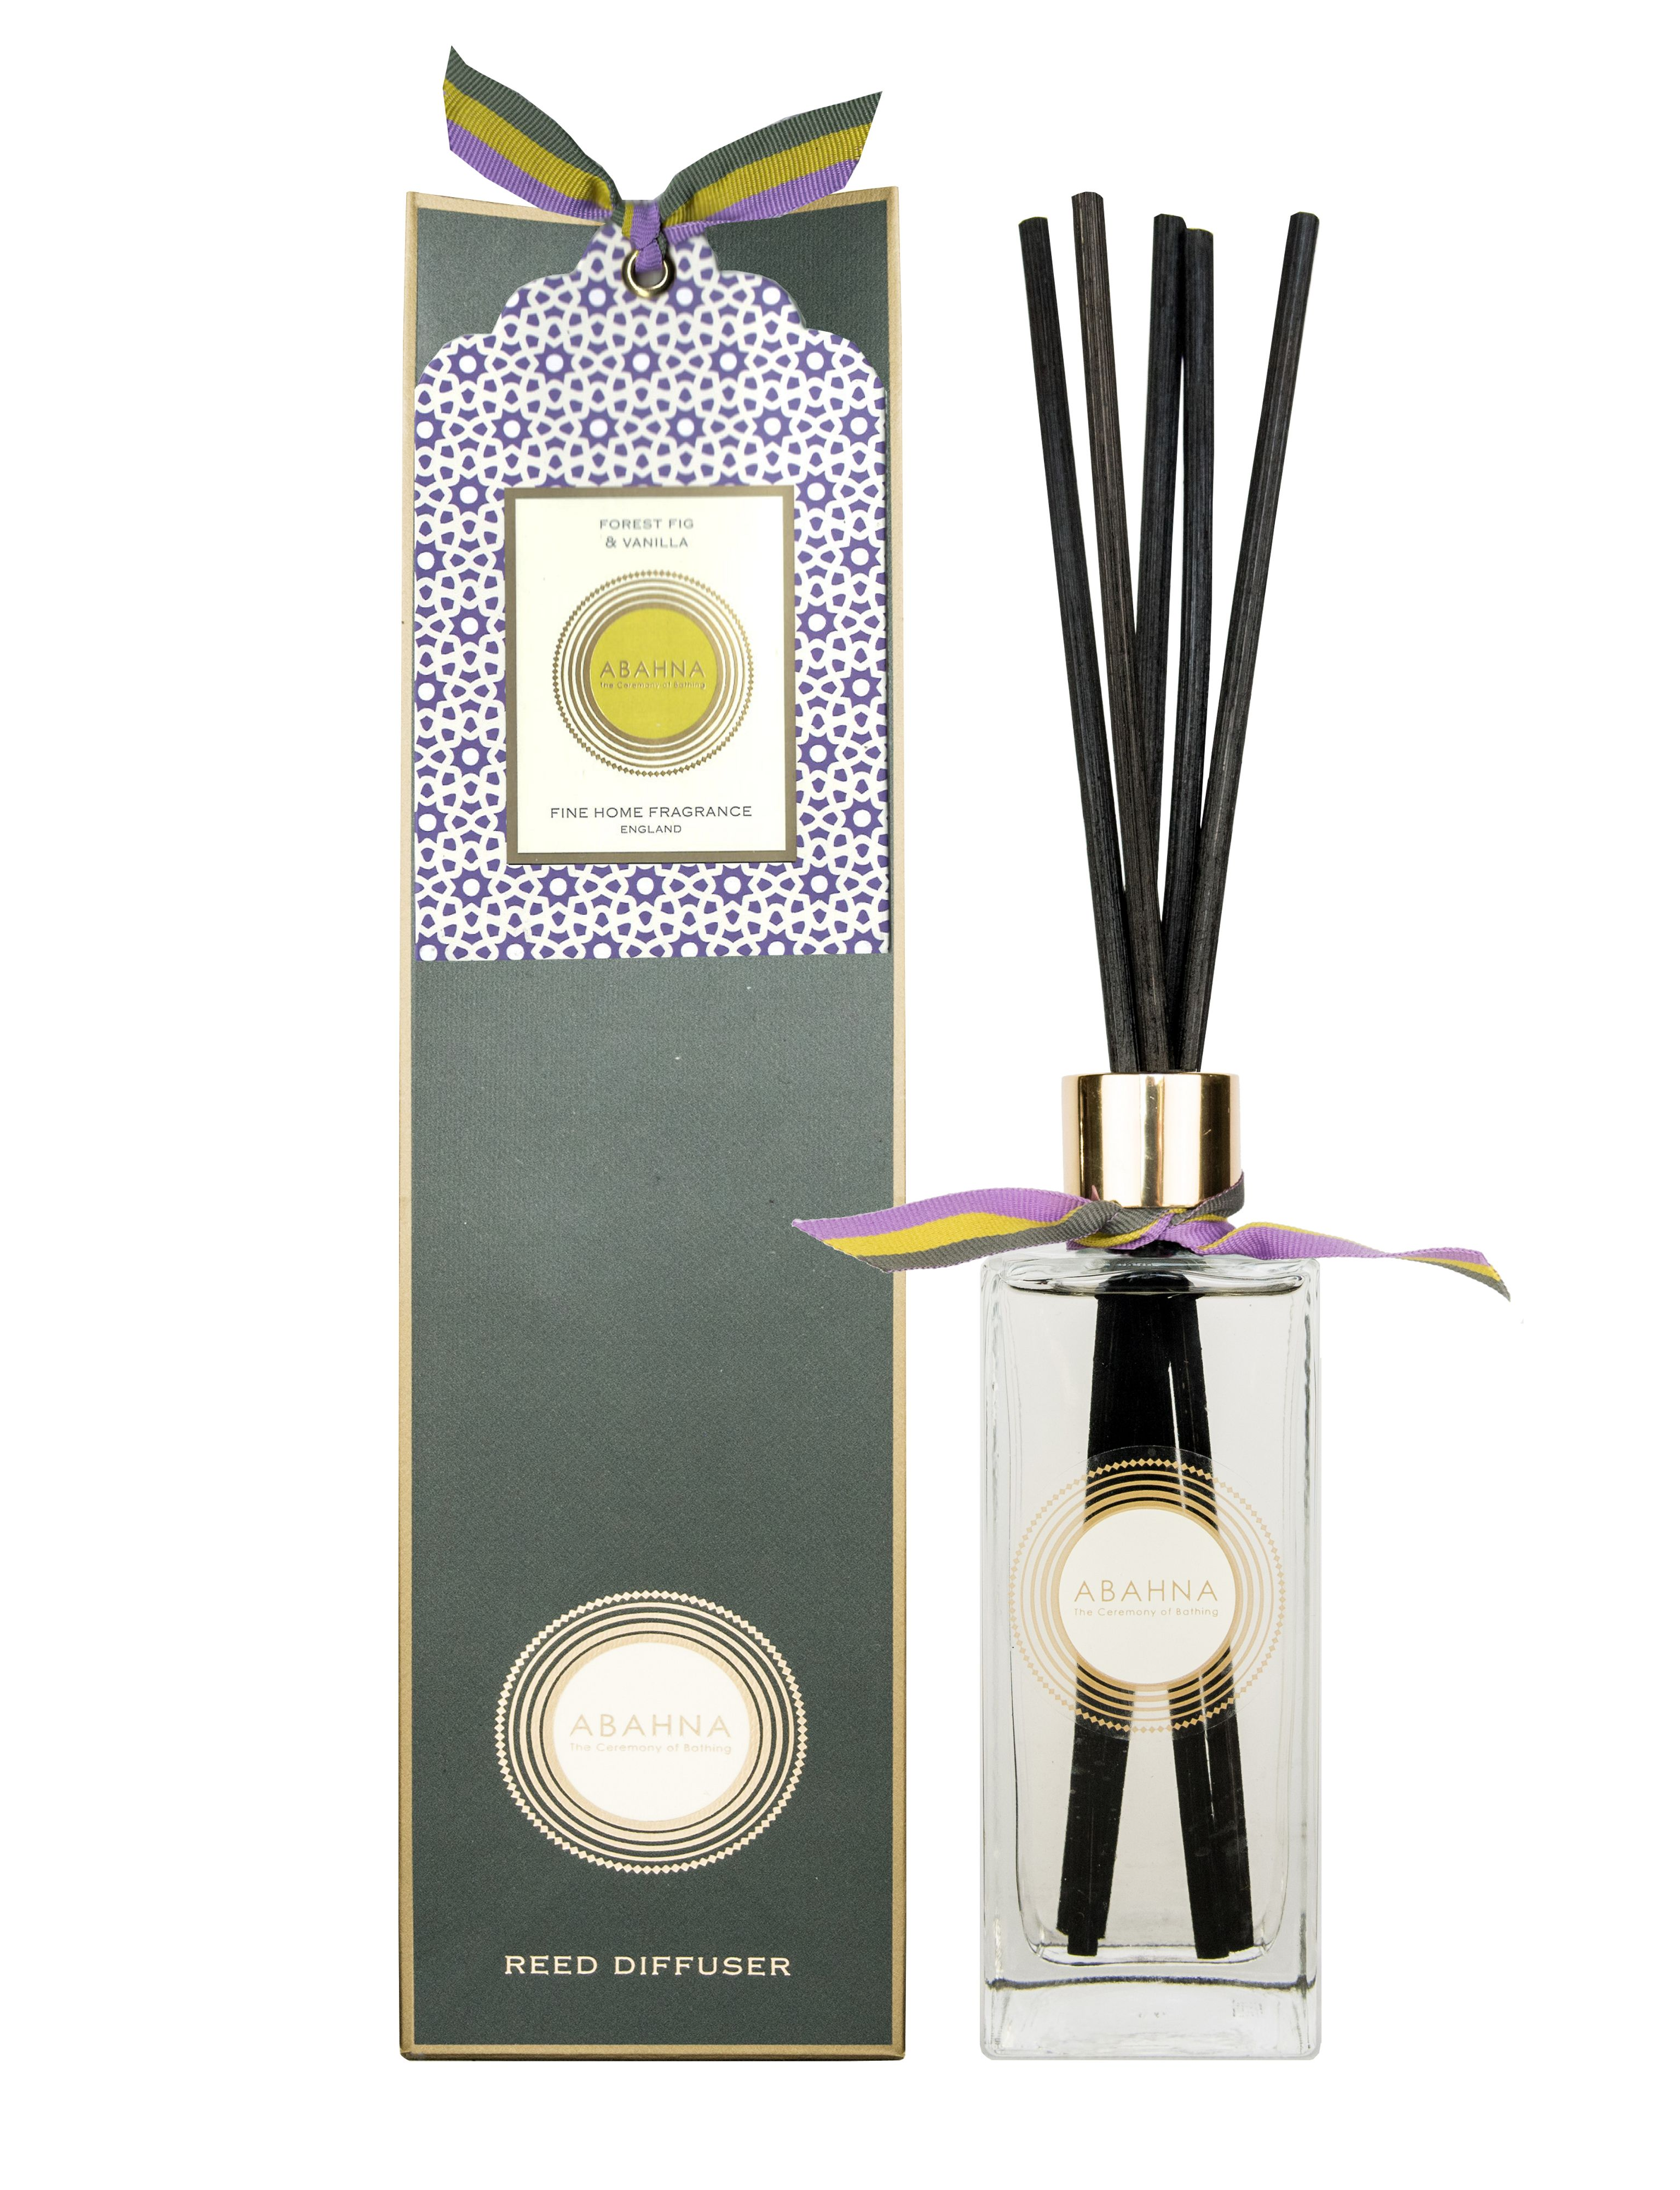 Image of Abahna Forest Fig & Vanilla Reed Diffuser Set 200ml